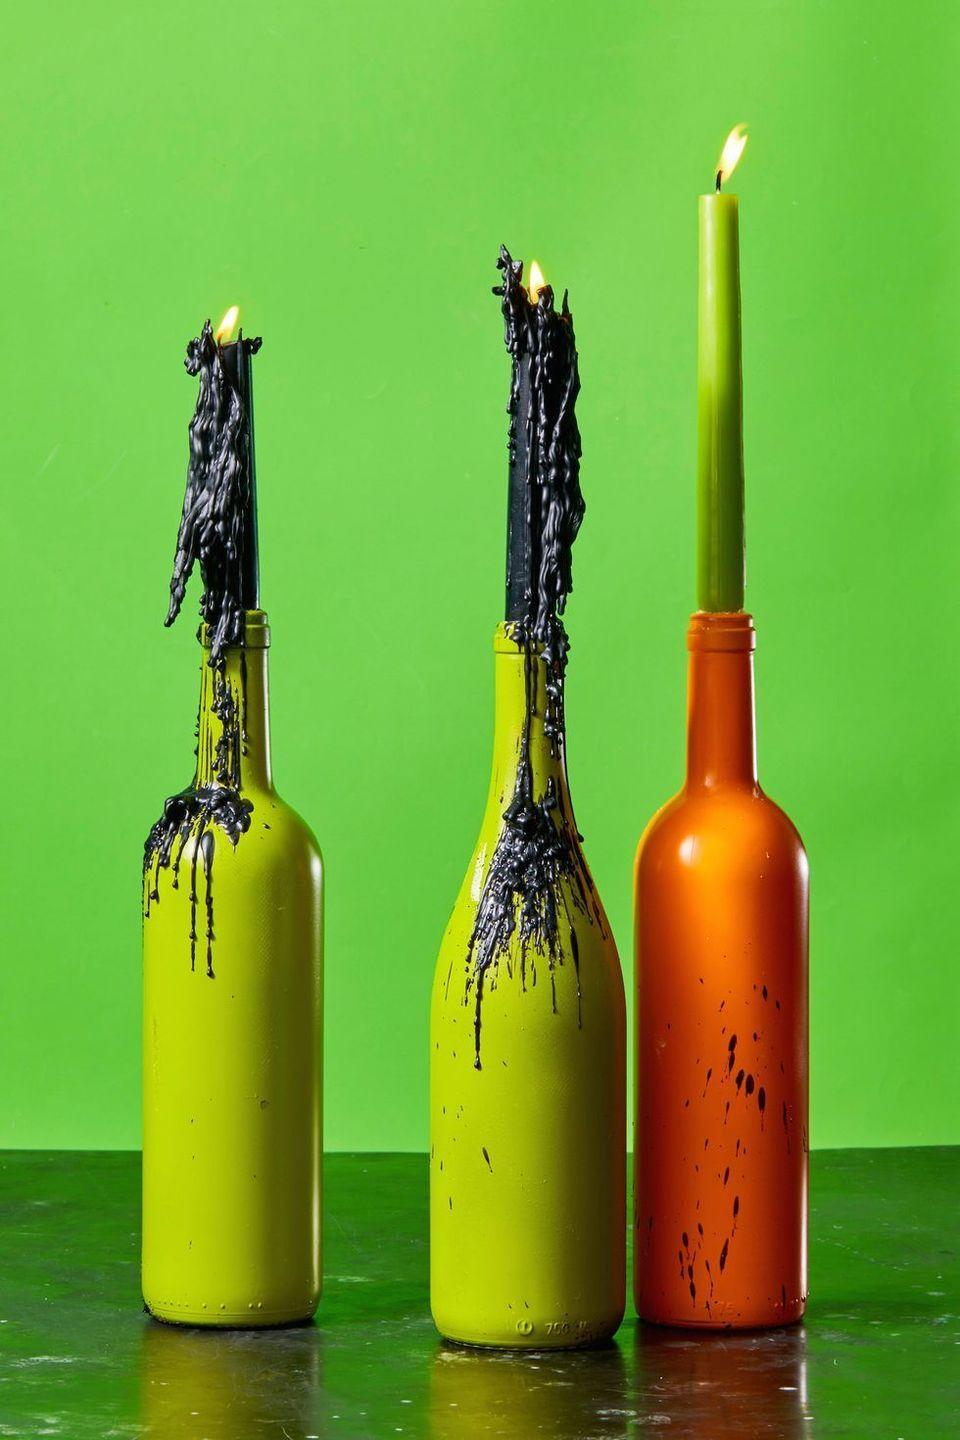 """<p>Make basic candlesticks just a little bit creepy for a standout centerpiece. Start by spray painting old wine bottles in orange and green and filling them with candlesticks. You can even let wax drip to make more of an impact. <br></p><p><a class=""""link rapid-noclick-resp"""" href=""""https://go.redirectingat.com?id=74968X1596630&url=https%3A%2F%2Fwww.etsy.com%2Flisting%2F711505565%2Fgreen-4-chime-candles-set-of-10-spell&sref=https%3A%2F%2Fwww.goodhousekeeping.com%2Fholidays%2Fhalloween-ideas%2Fg33437890%2Fhalloween-table-decorations-centerpieces%2F"""" rel=""""nofollow noopener"""" target=""""_blank"""" data-ylk=""""slk:SHOP CANDLESTICKS"""">SHOP CANDLESTICKS</a></p>"""